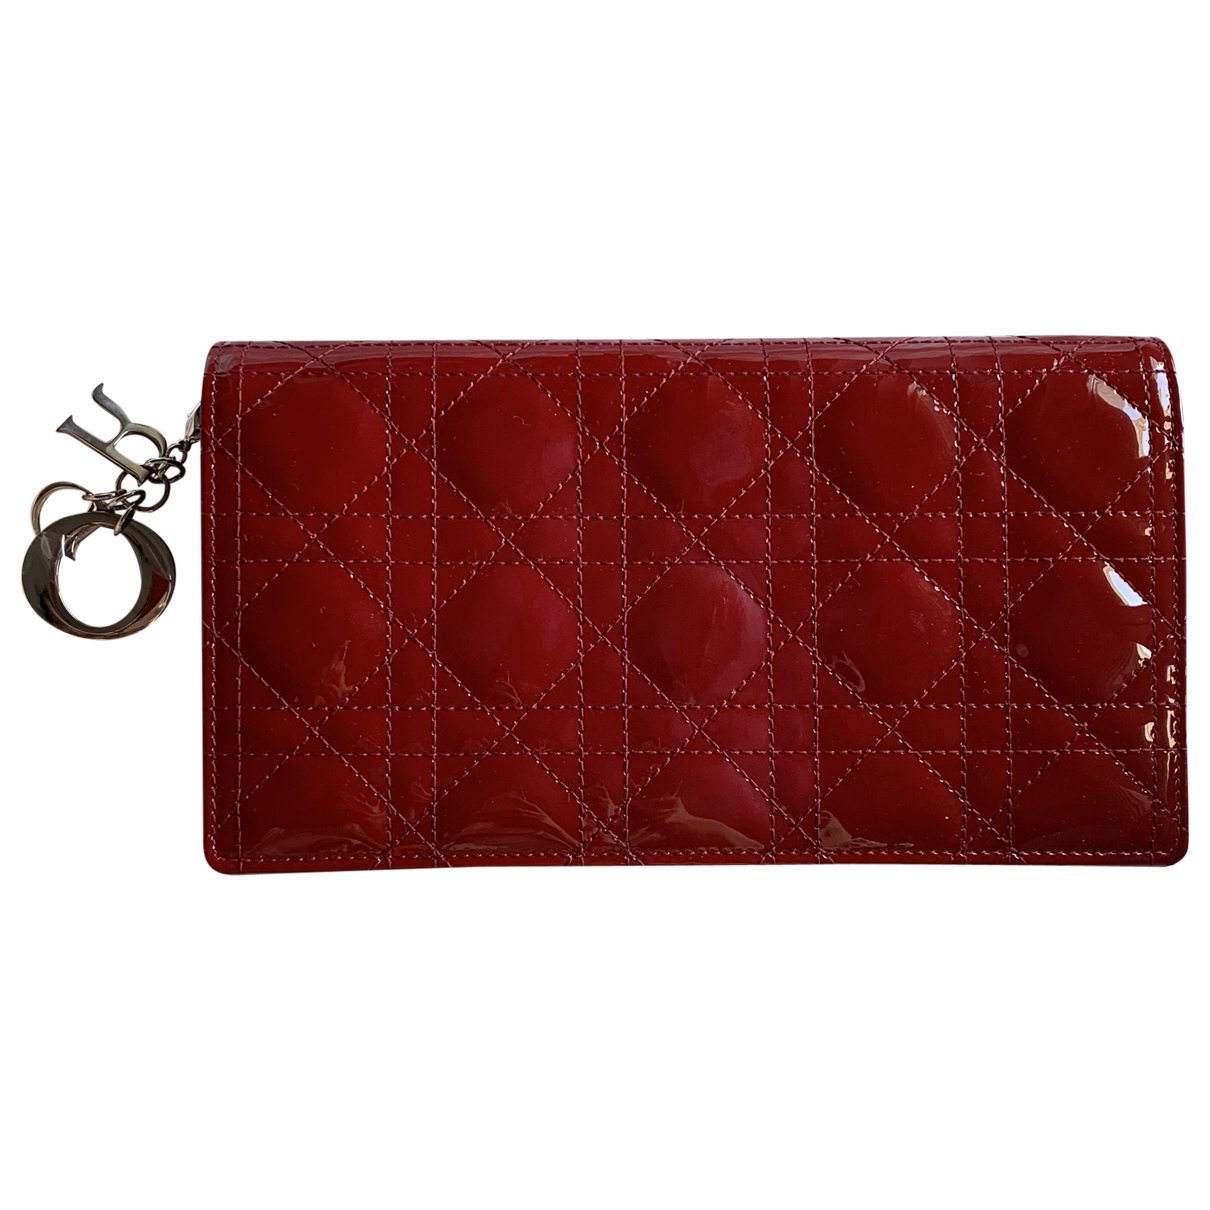 Dior Lady Dior Red Patent leather Clutch bag for Women \N